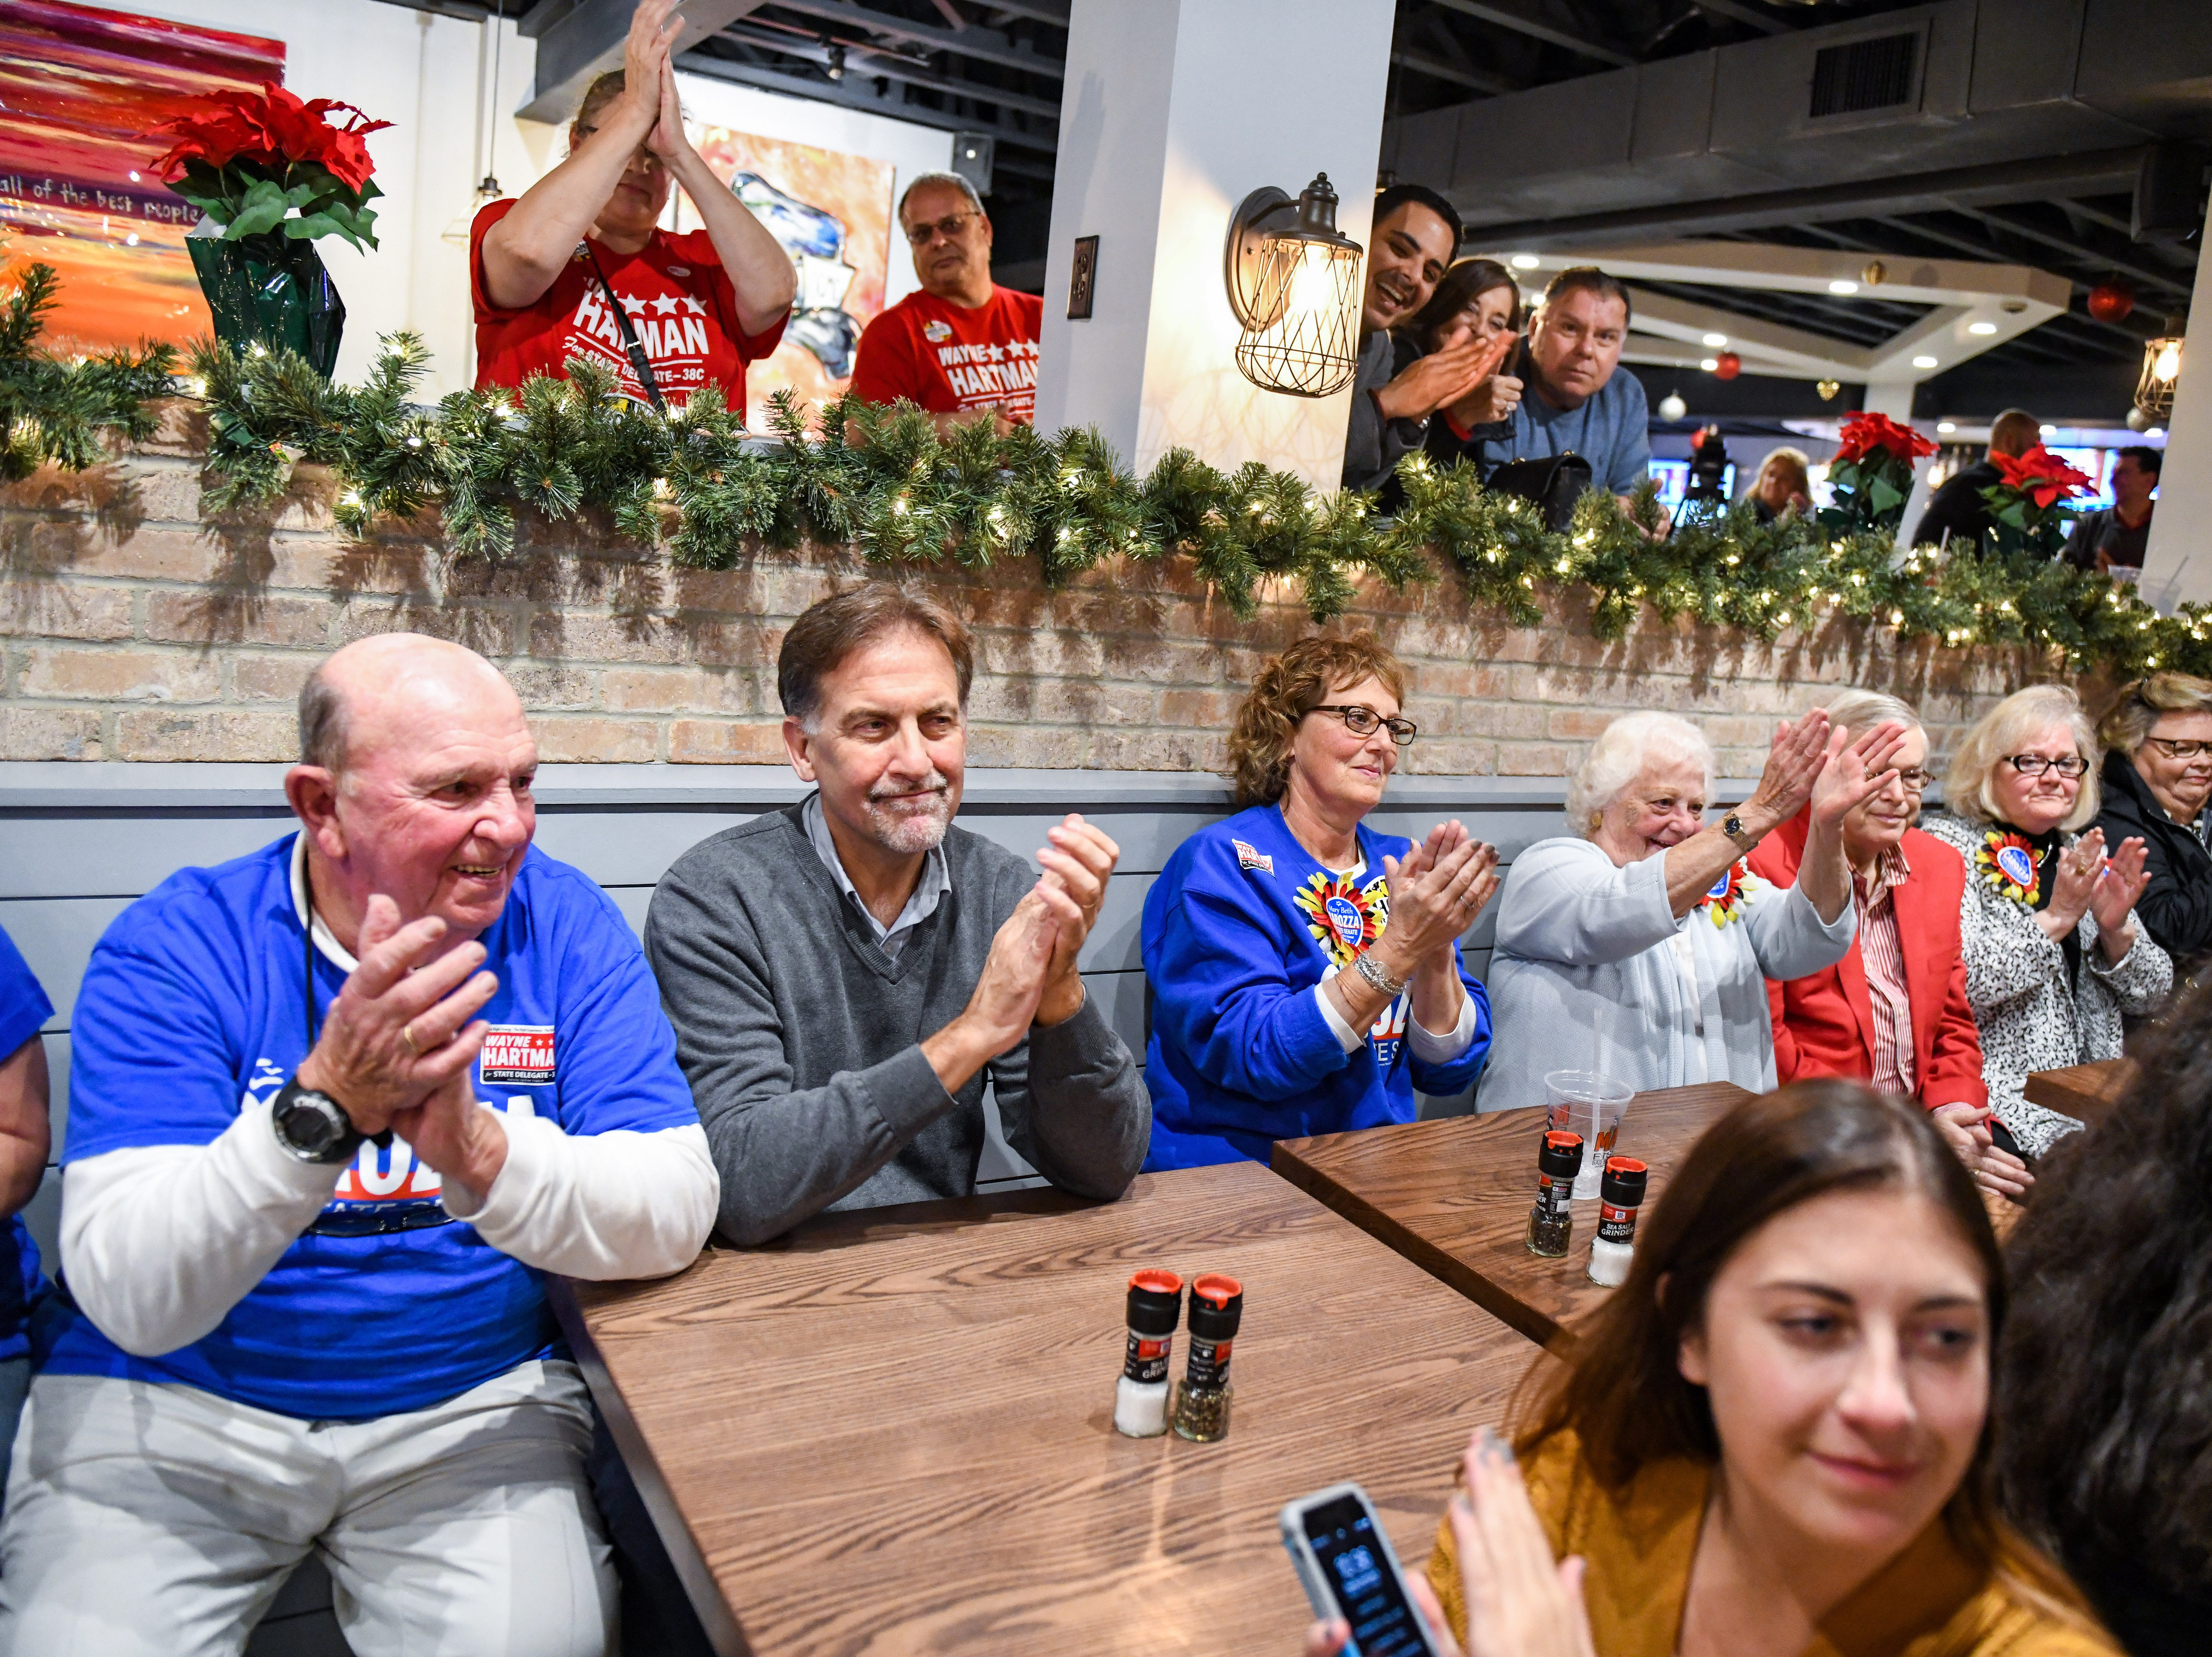 Supporters cheers as Republican Mary Beth Carozza speaks at her Ocean City watch party shortly after she was elected the new Maryland state senator in District 38 on Tuesday, Nov 6, 2018.